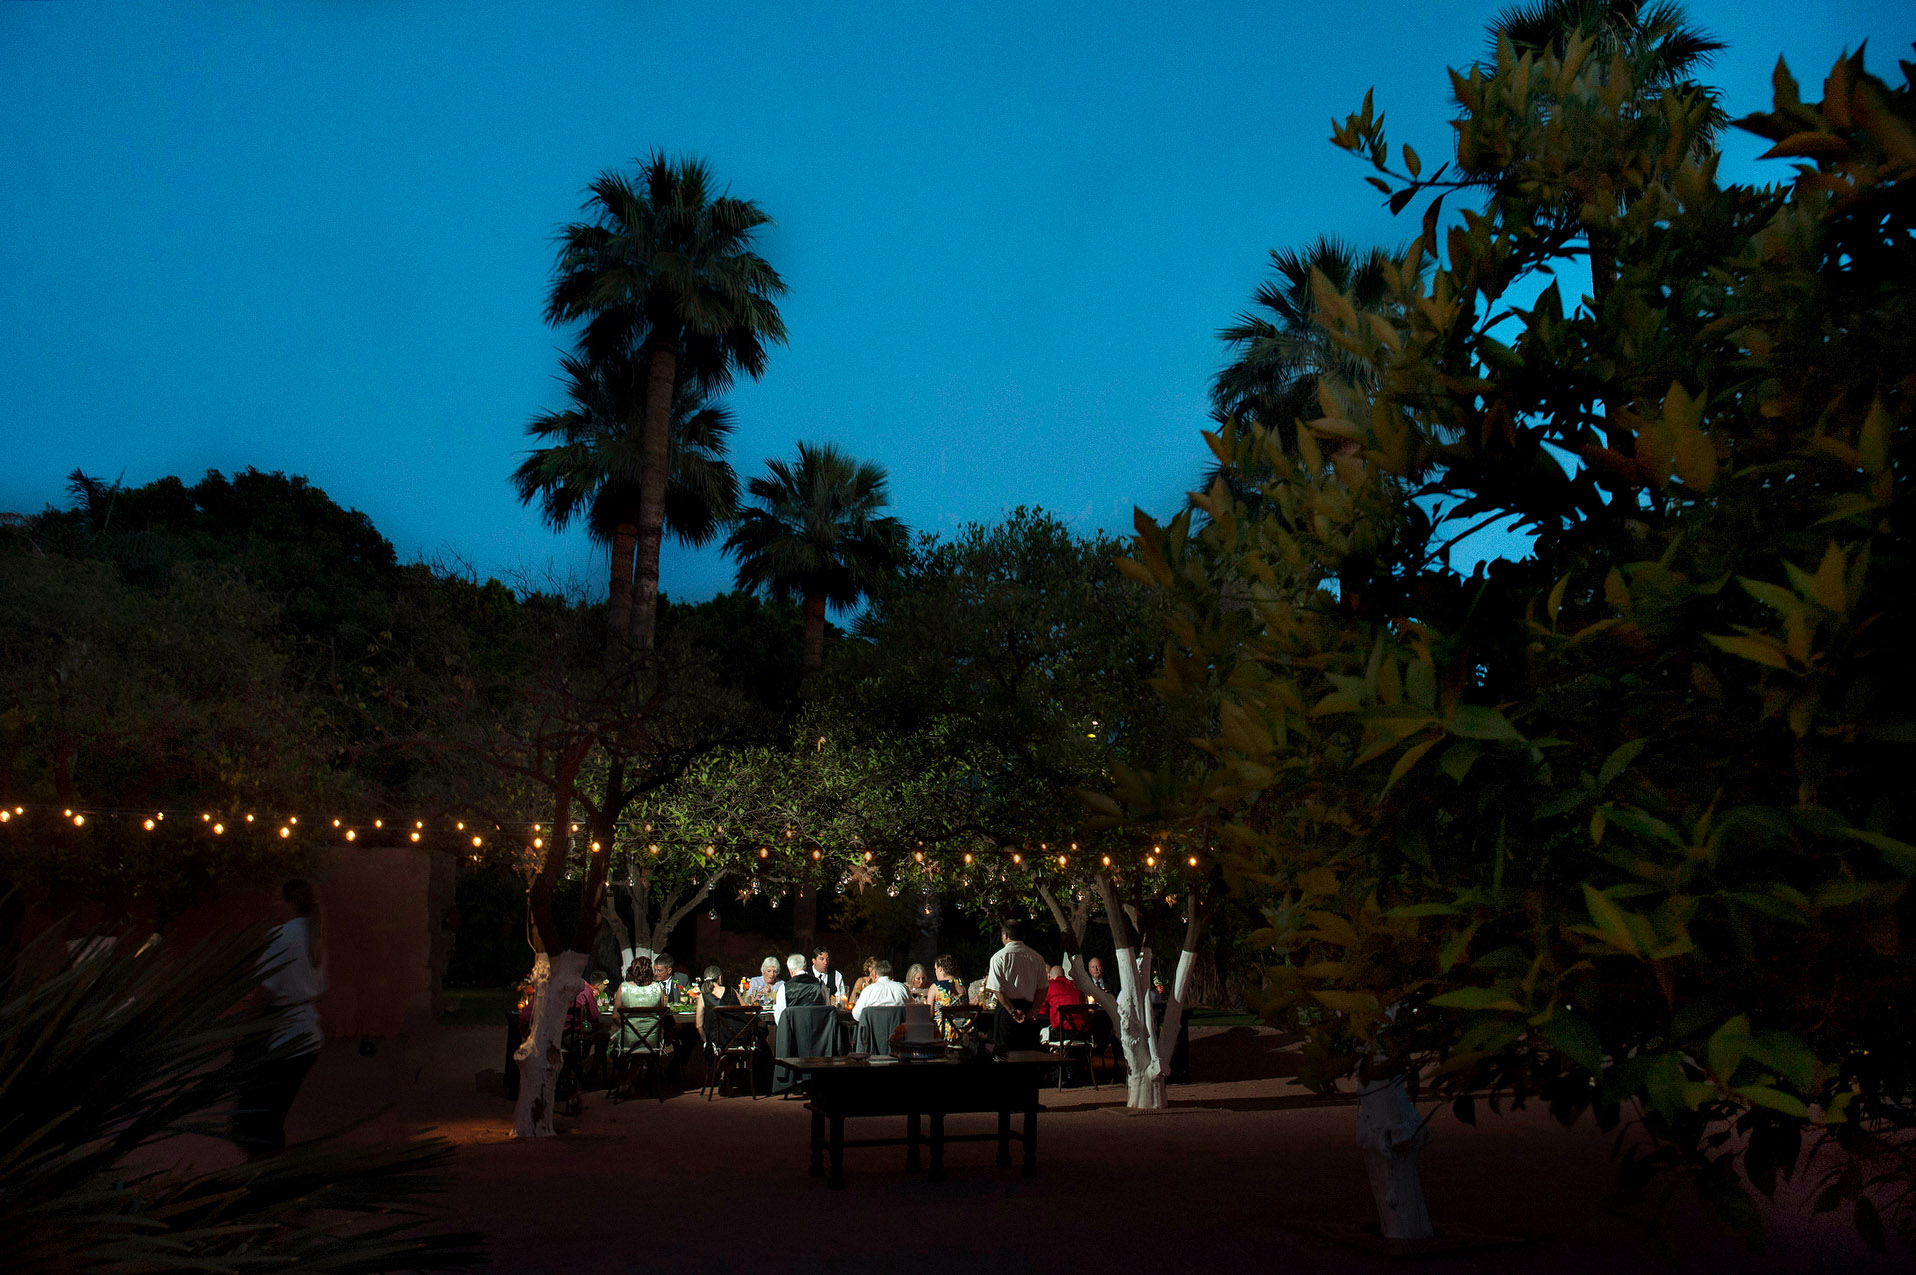 AZ Elopement Venue Picture | The private wedding dinner took place in an orange grove